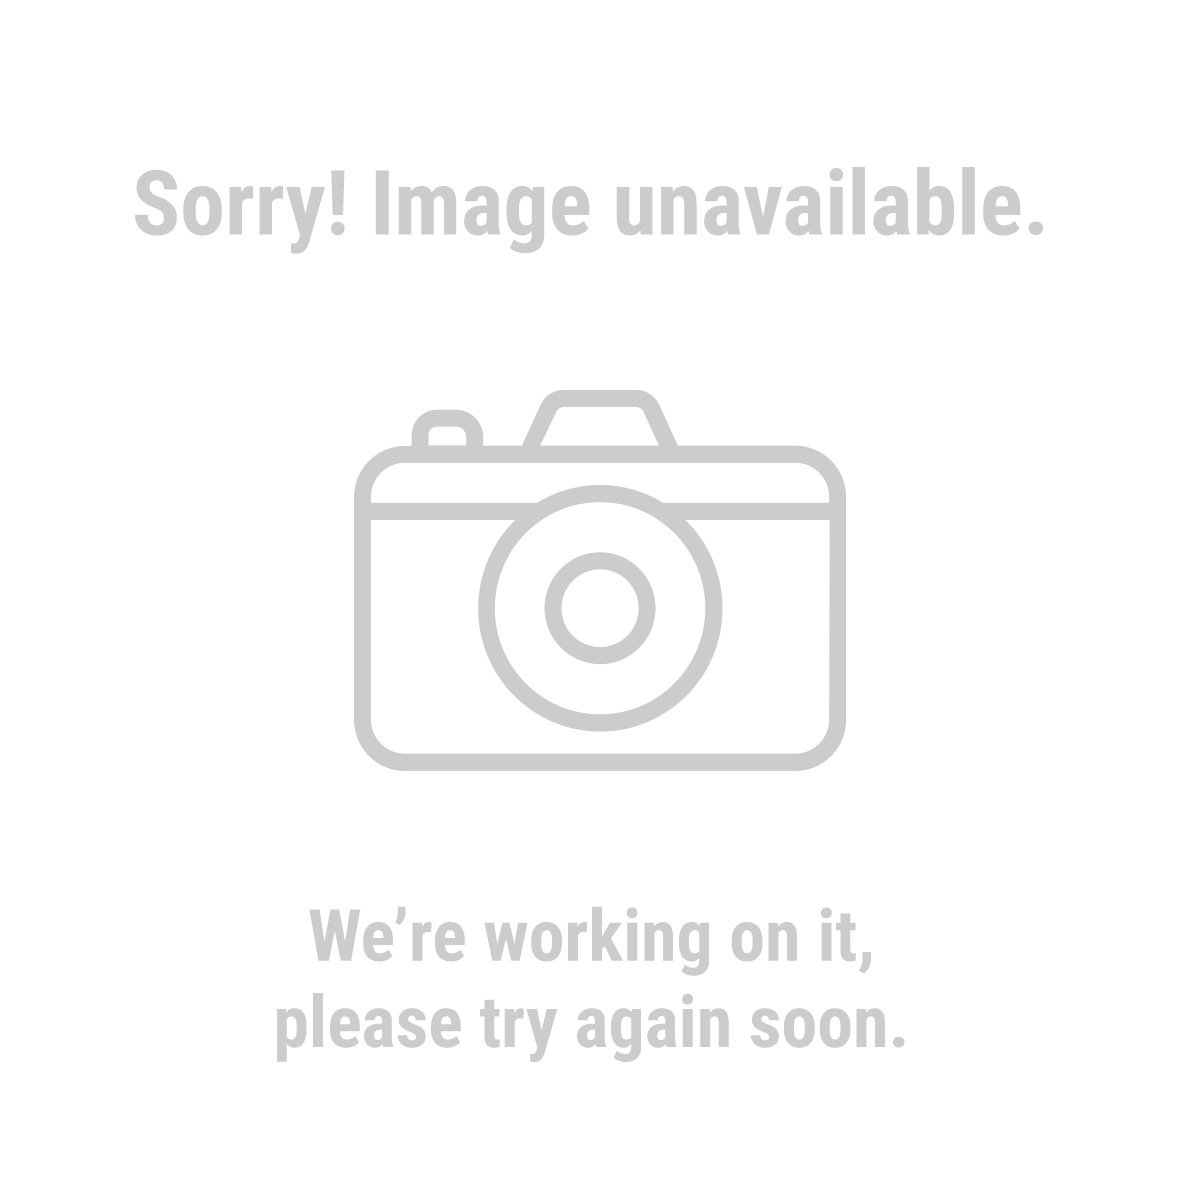 Storehouse 67609 225 Piece Metric Nitrile O-Ring Assortment